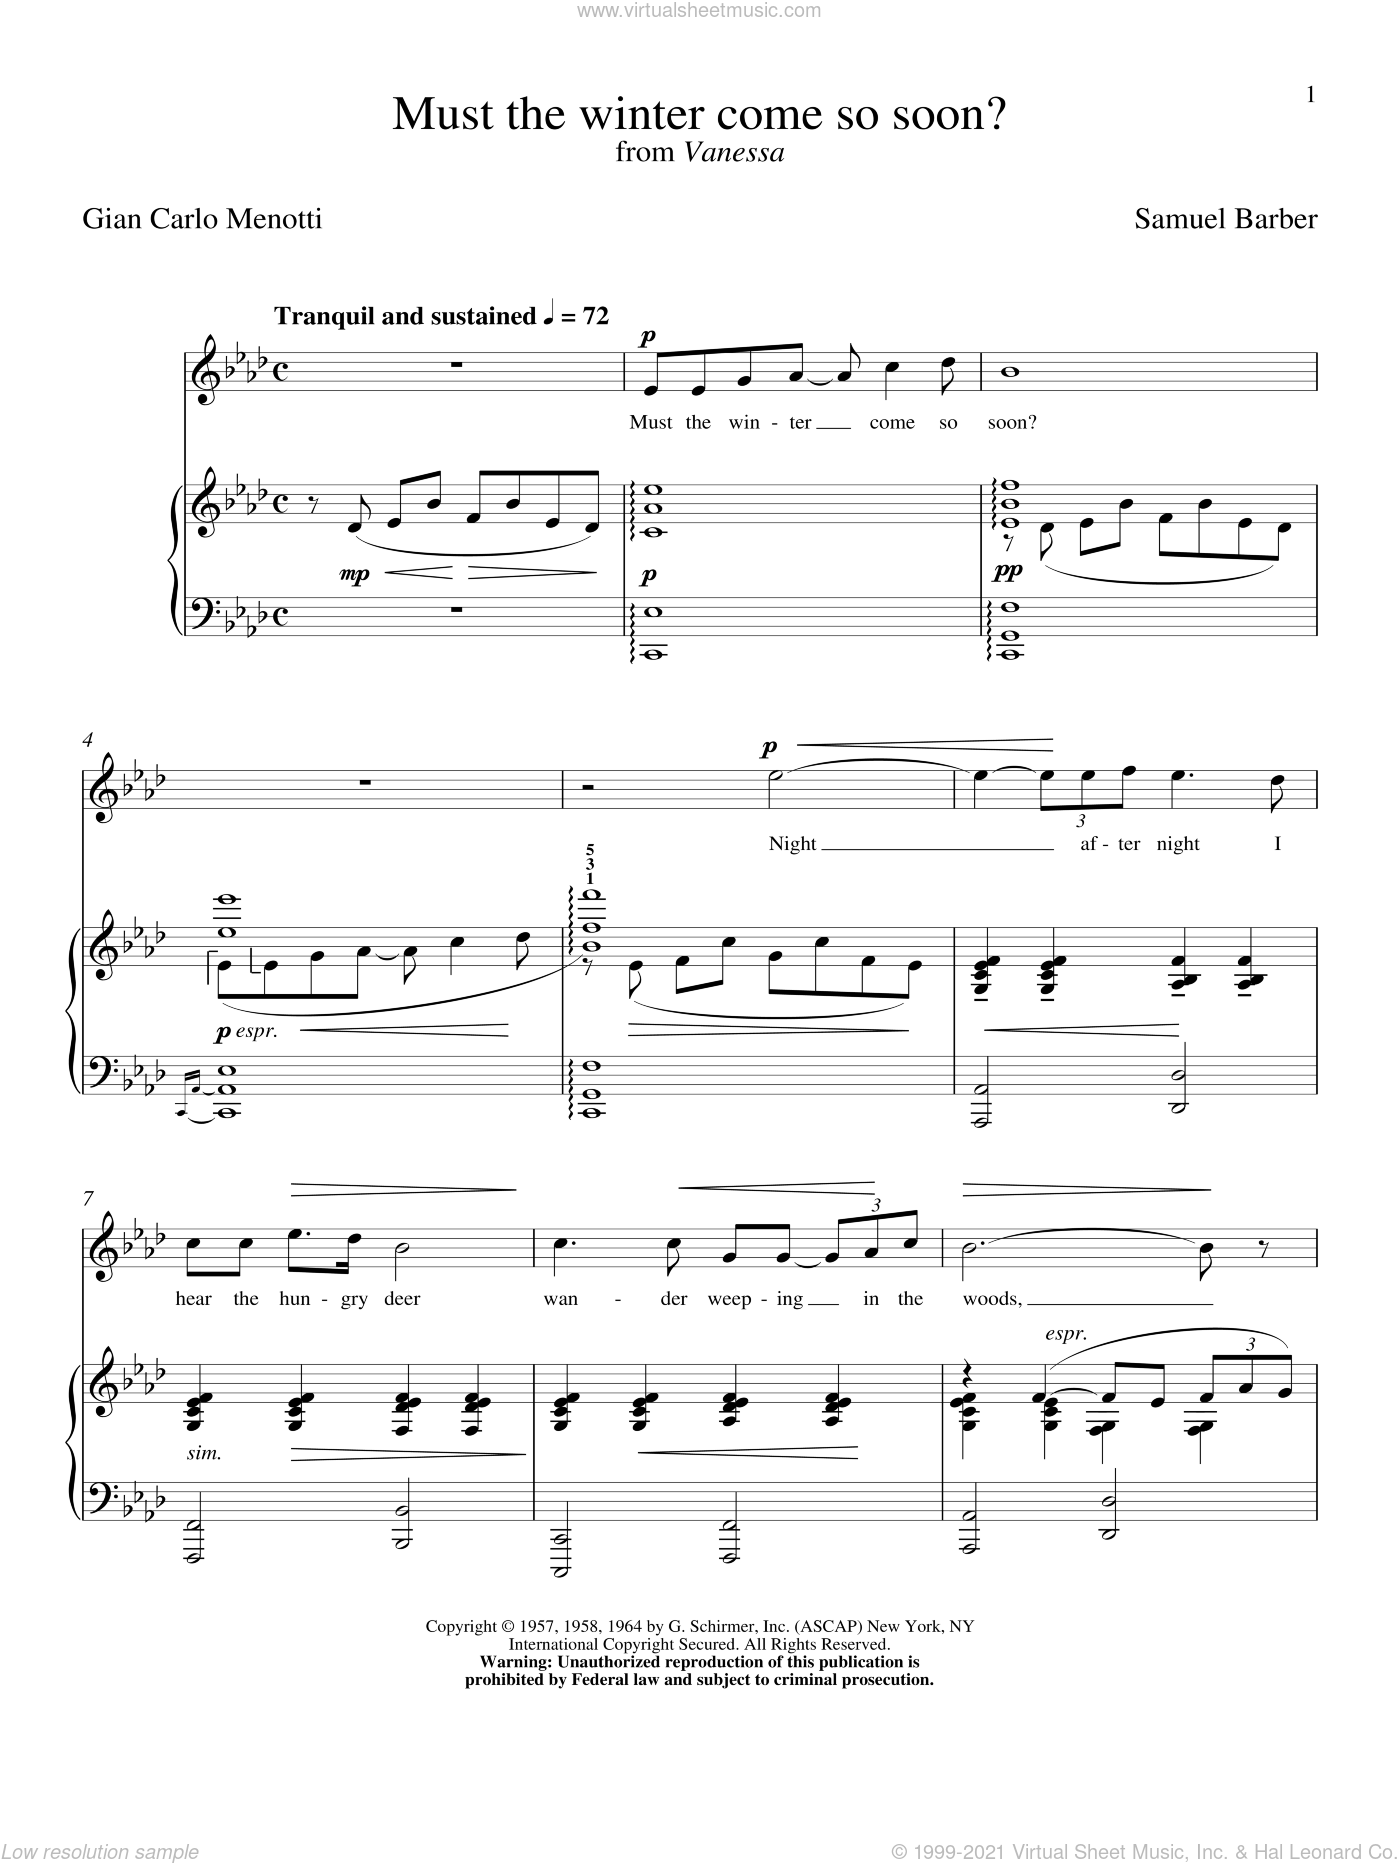 Must The Winter Come So Soon? sheet music for voice and piano by Samuel Barber. Score Image Preview.